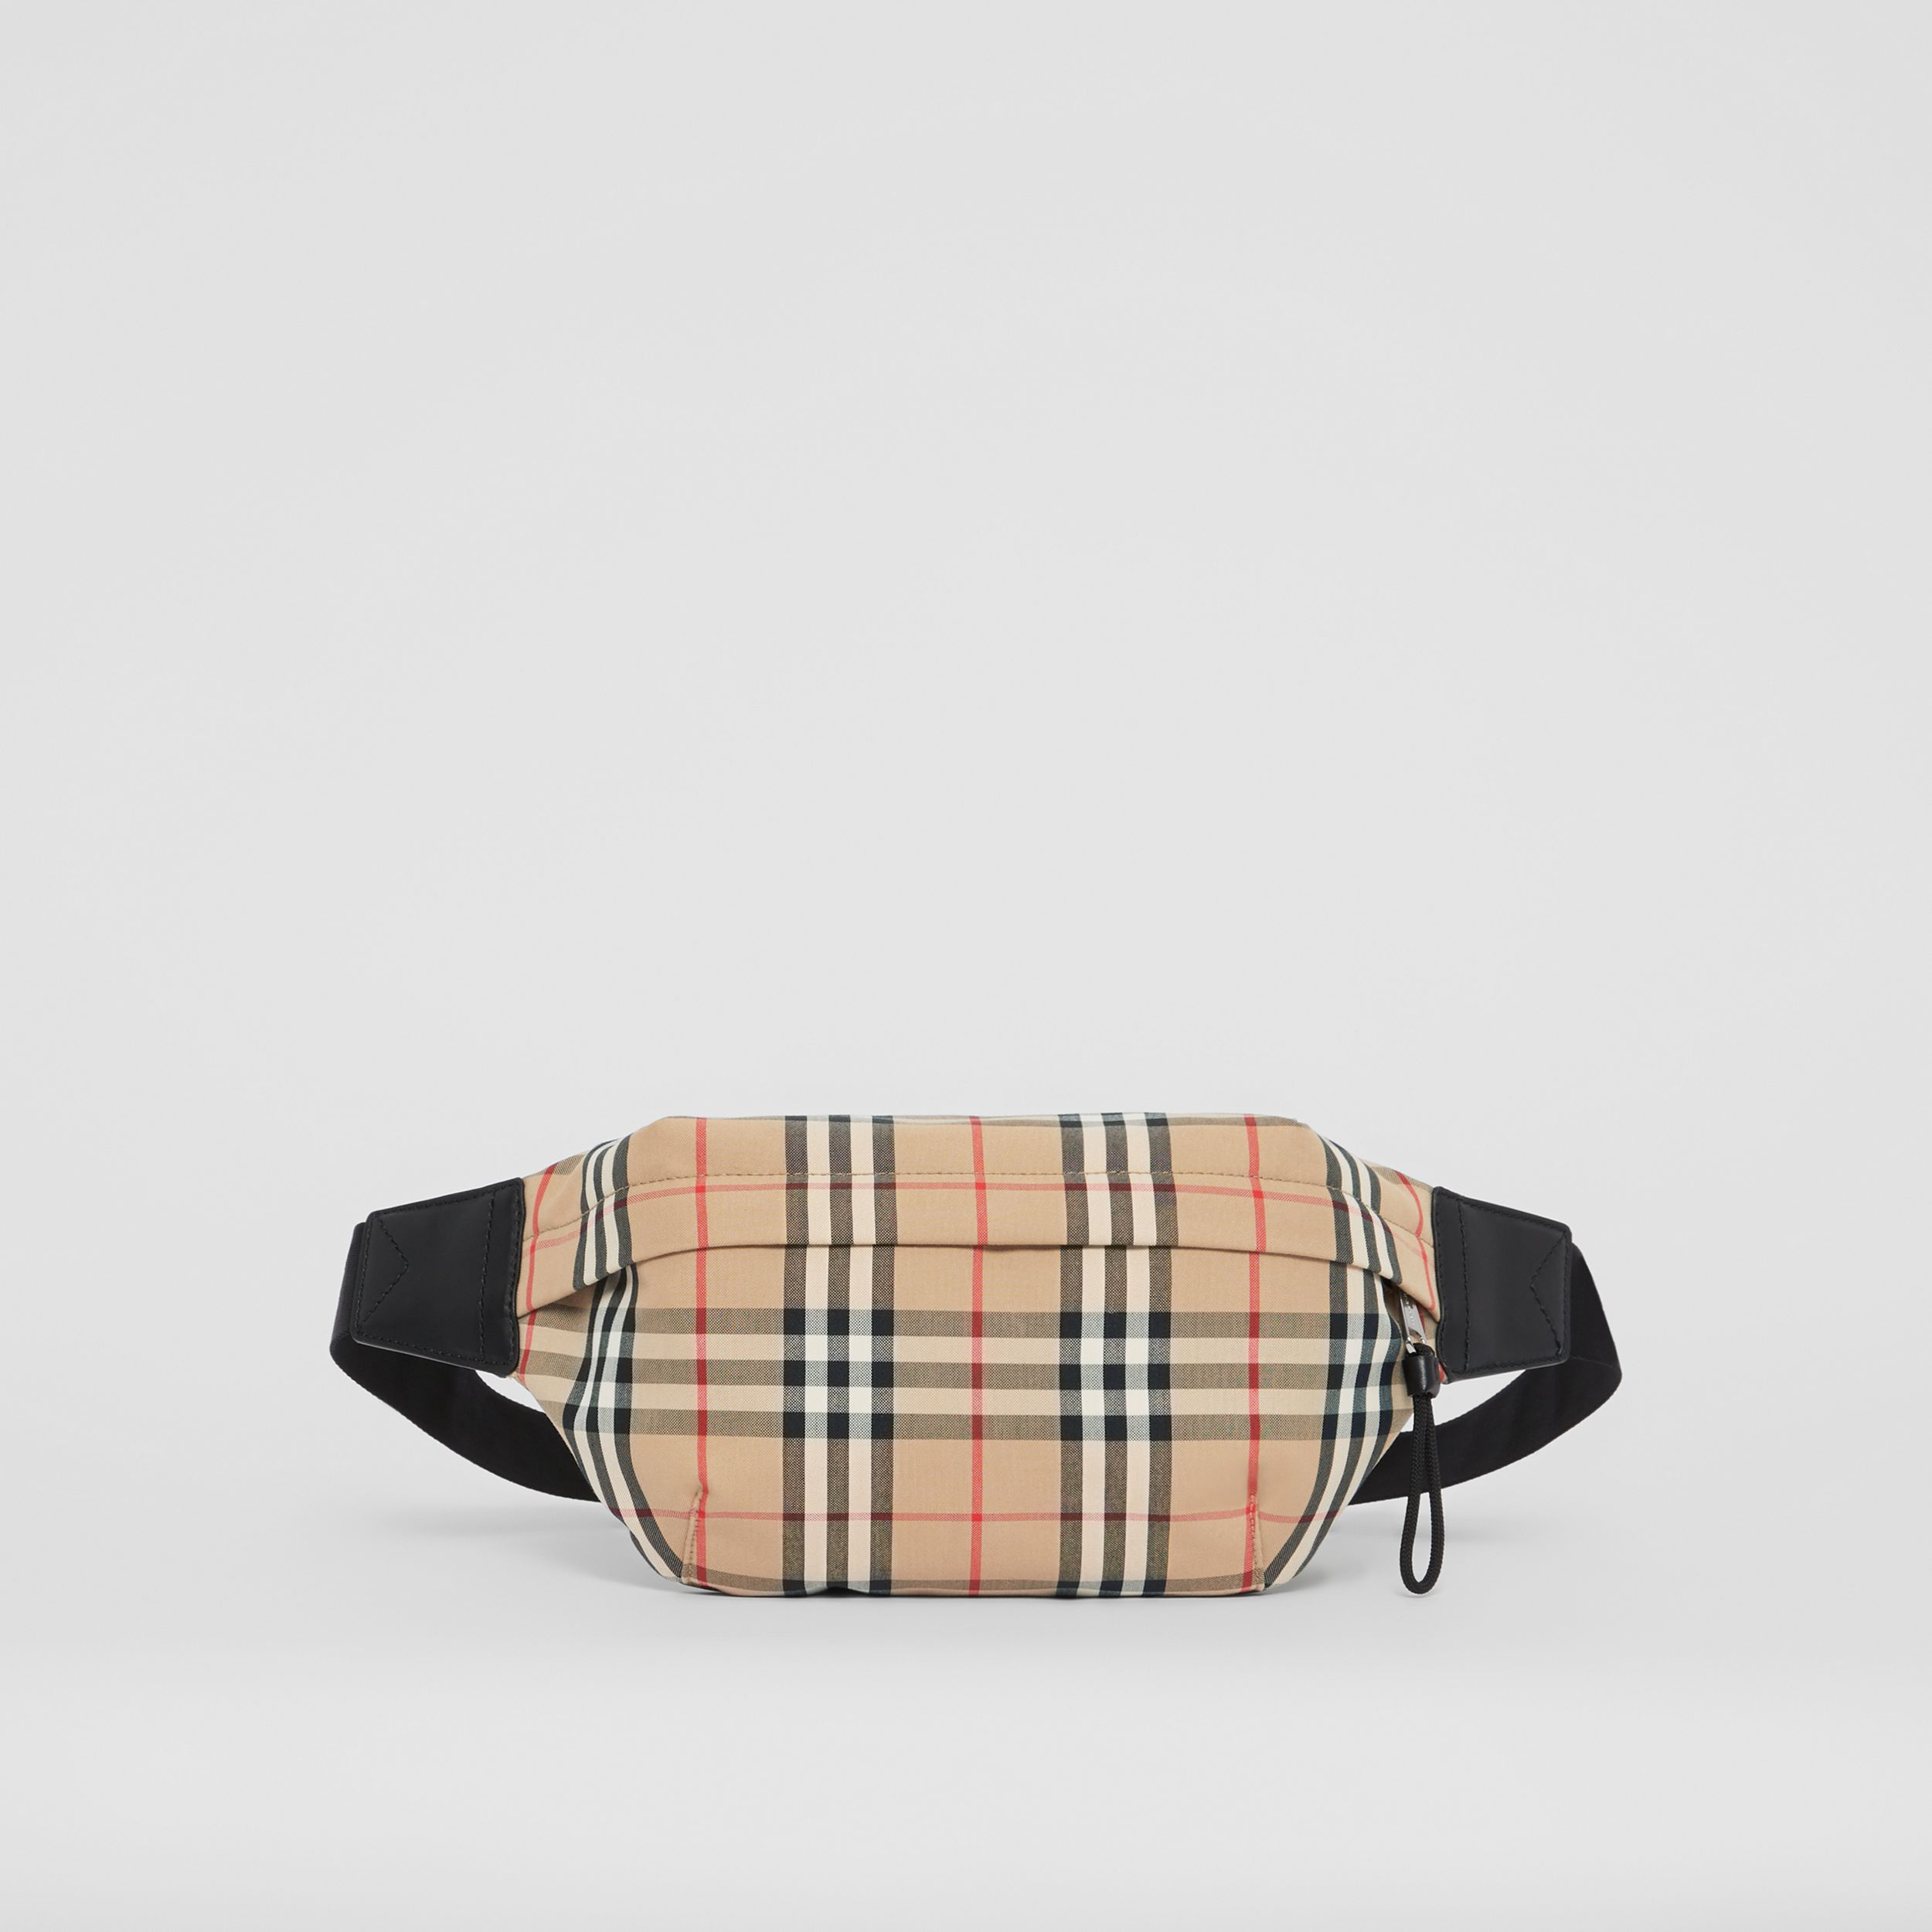 Medium Vintage Check Bonded Cotton Bum Bag in Archive Beige | Burberry Hong Kong S.A.R. - 1